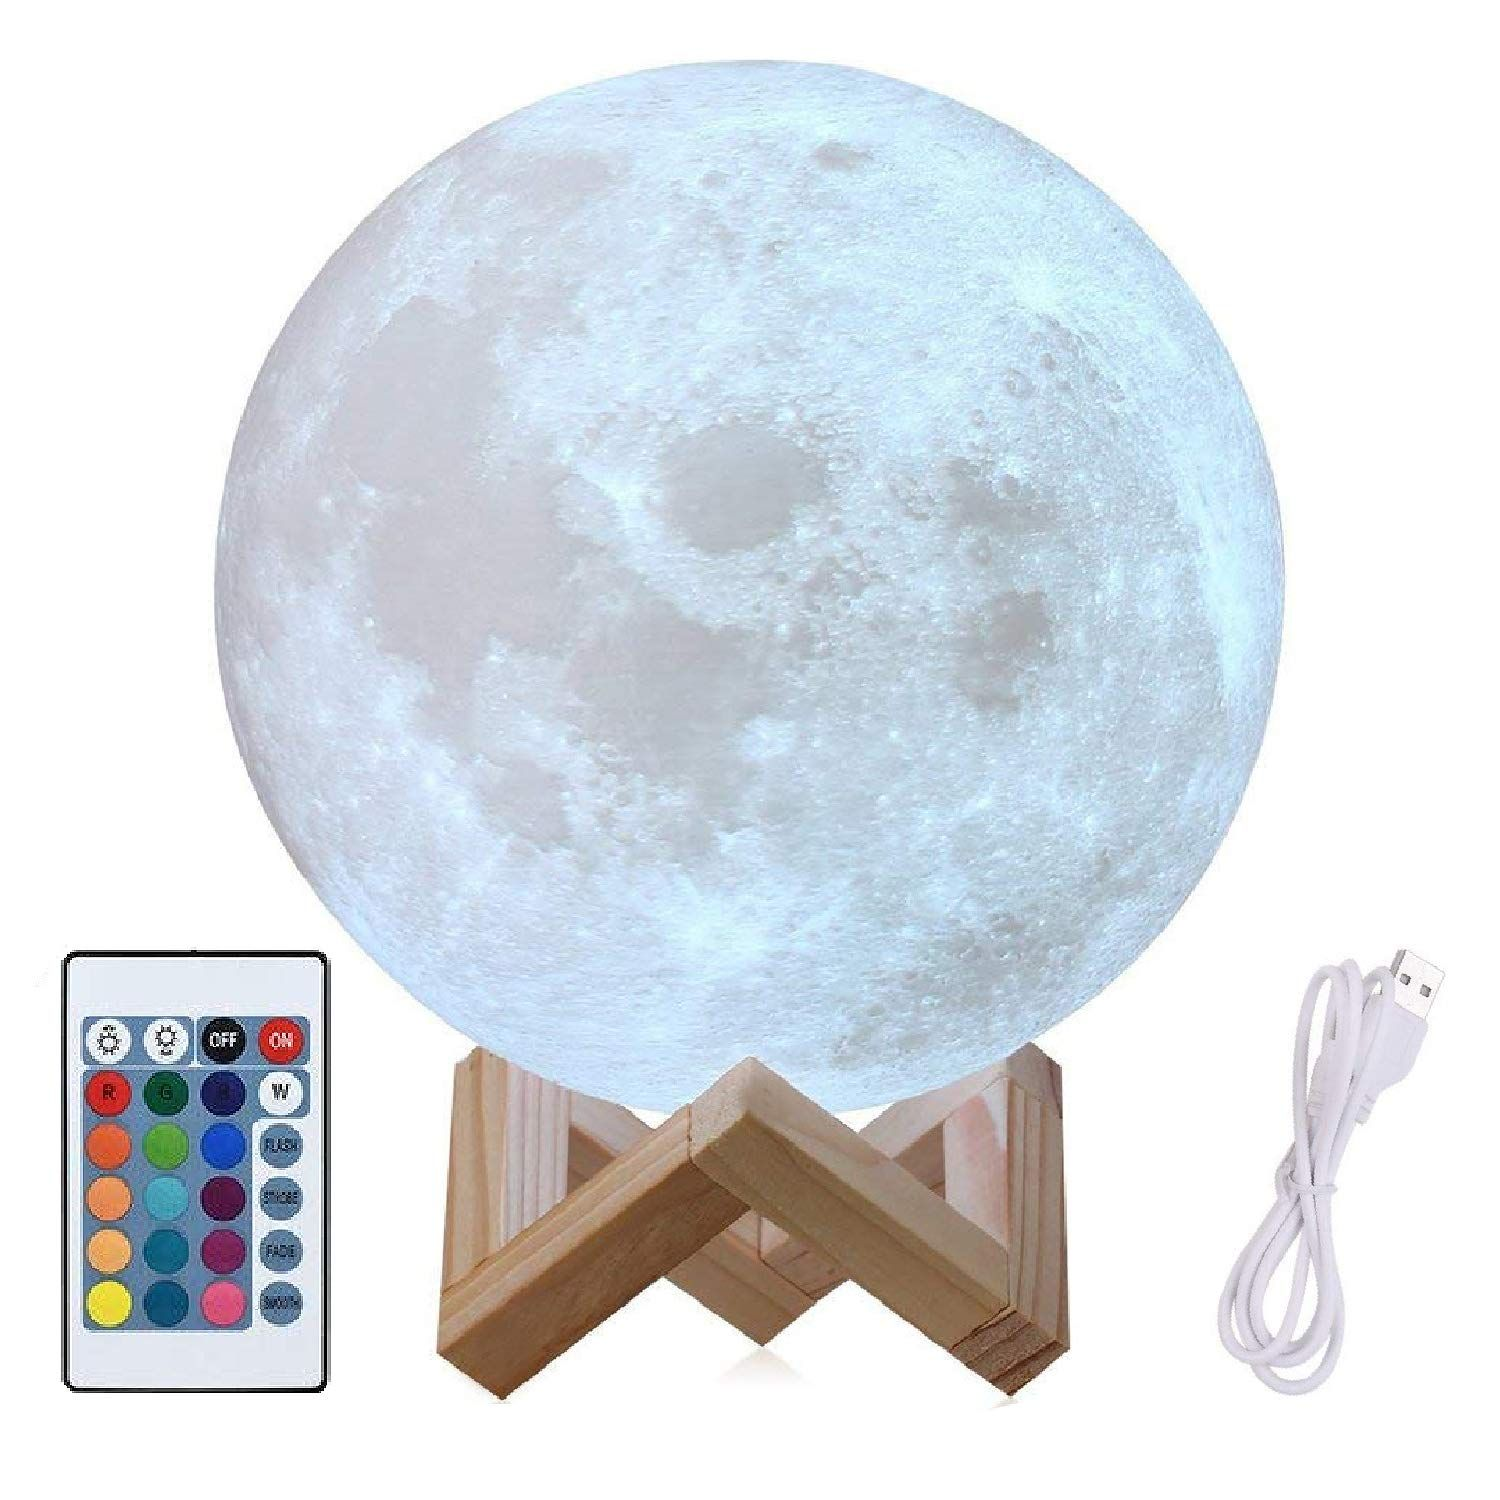 8 Moon Lamp Large Genuine Moon Light Lamps I ˆ6 113d Printed Moon Light With Stand The 3d Moon Lamp With Led 16 Color Moon Light Lamp Lamp Light Trending Decor